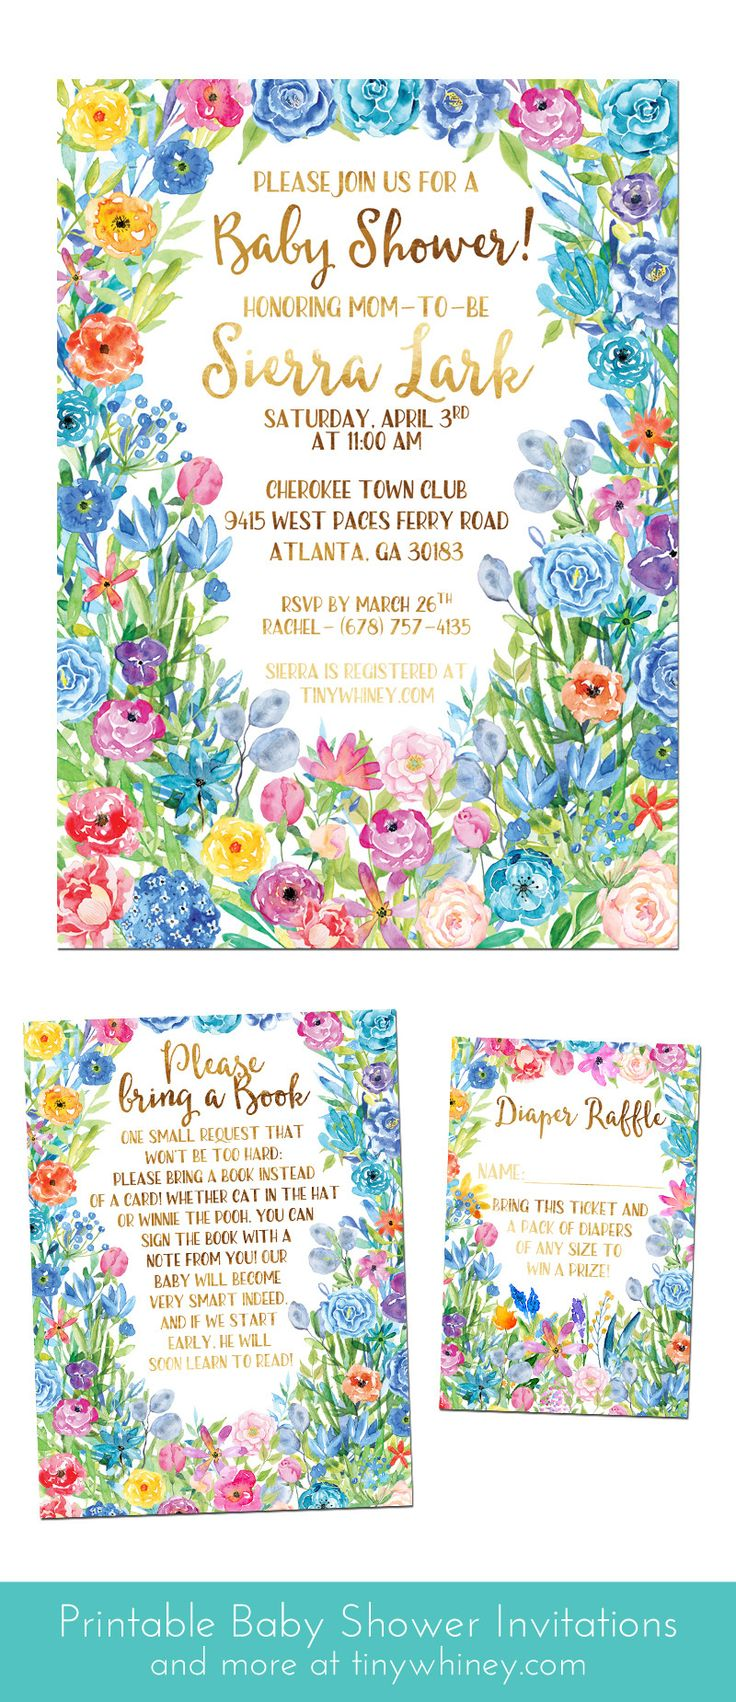 Playful and colorful, this garden baby shower invitation suite features heaps of bright pink, blue, purple, and yellow flowers. Perfect for a spring or summer baby shower!